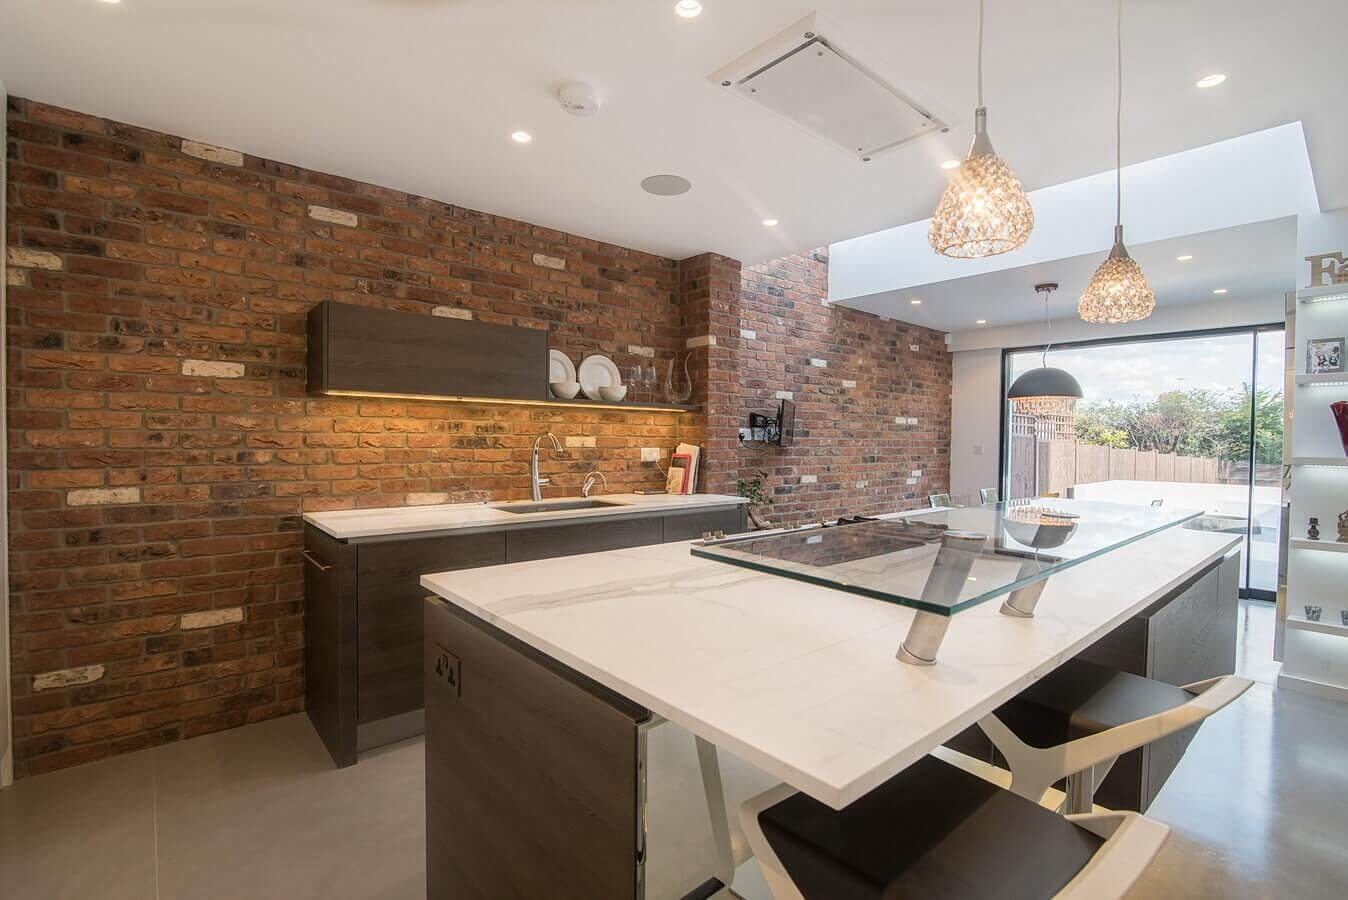 Modern-Nobilia-Kitchen-North-London.jpg